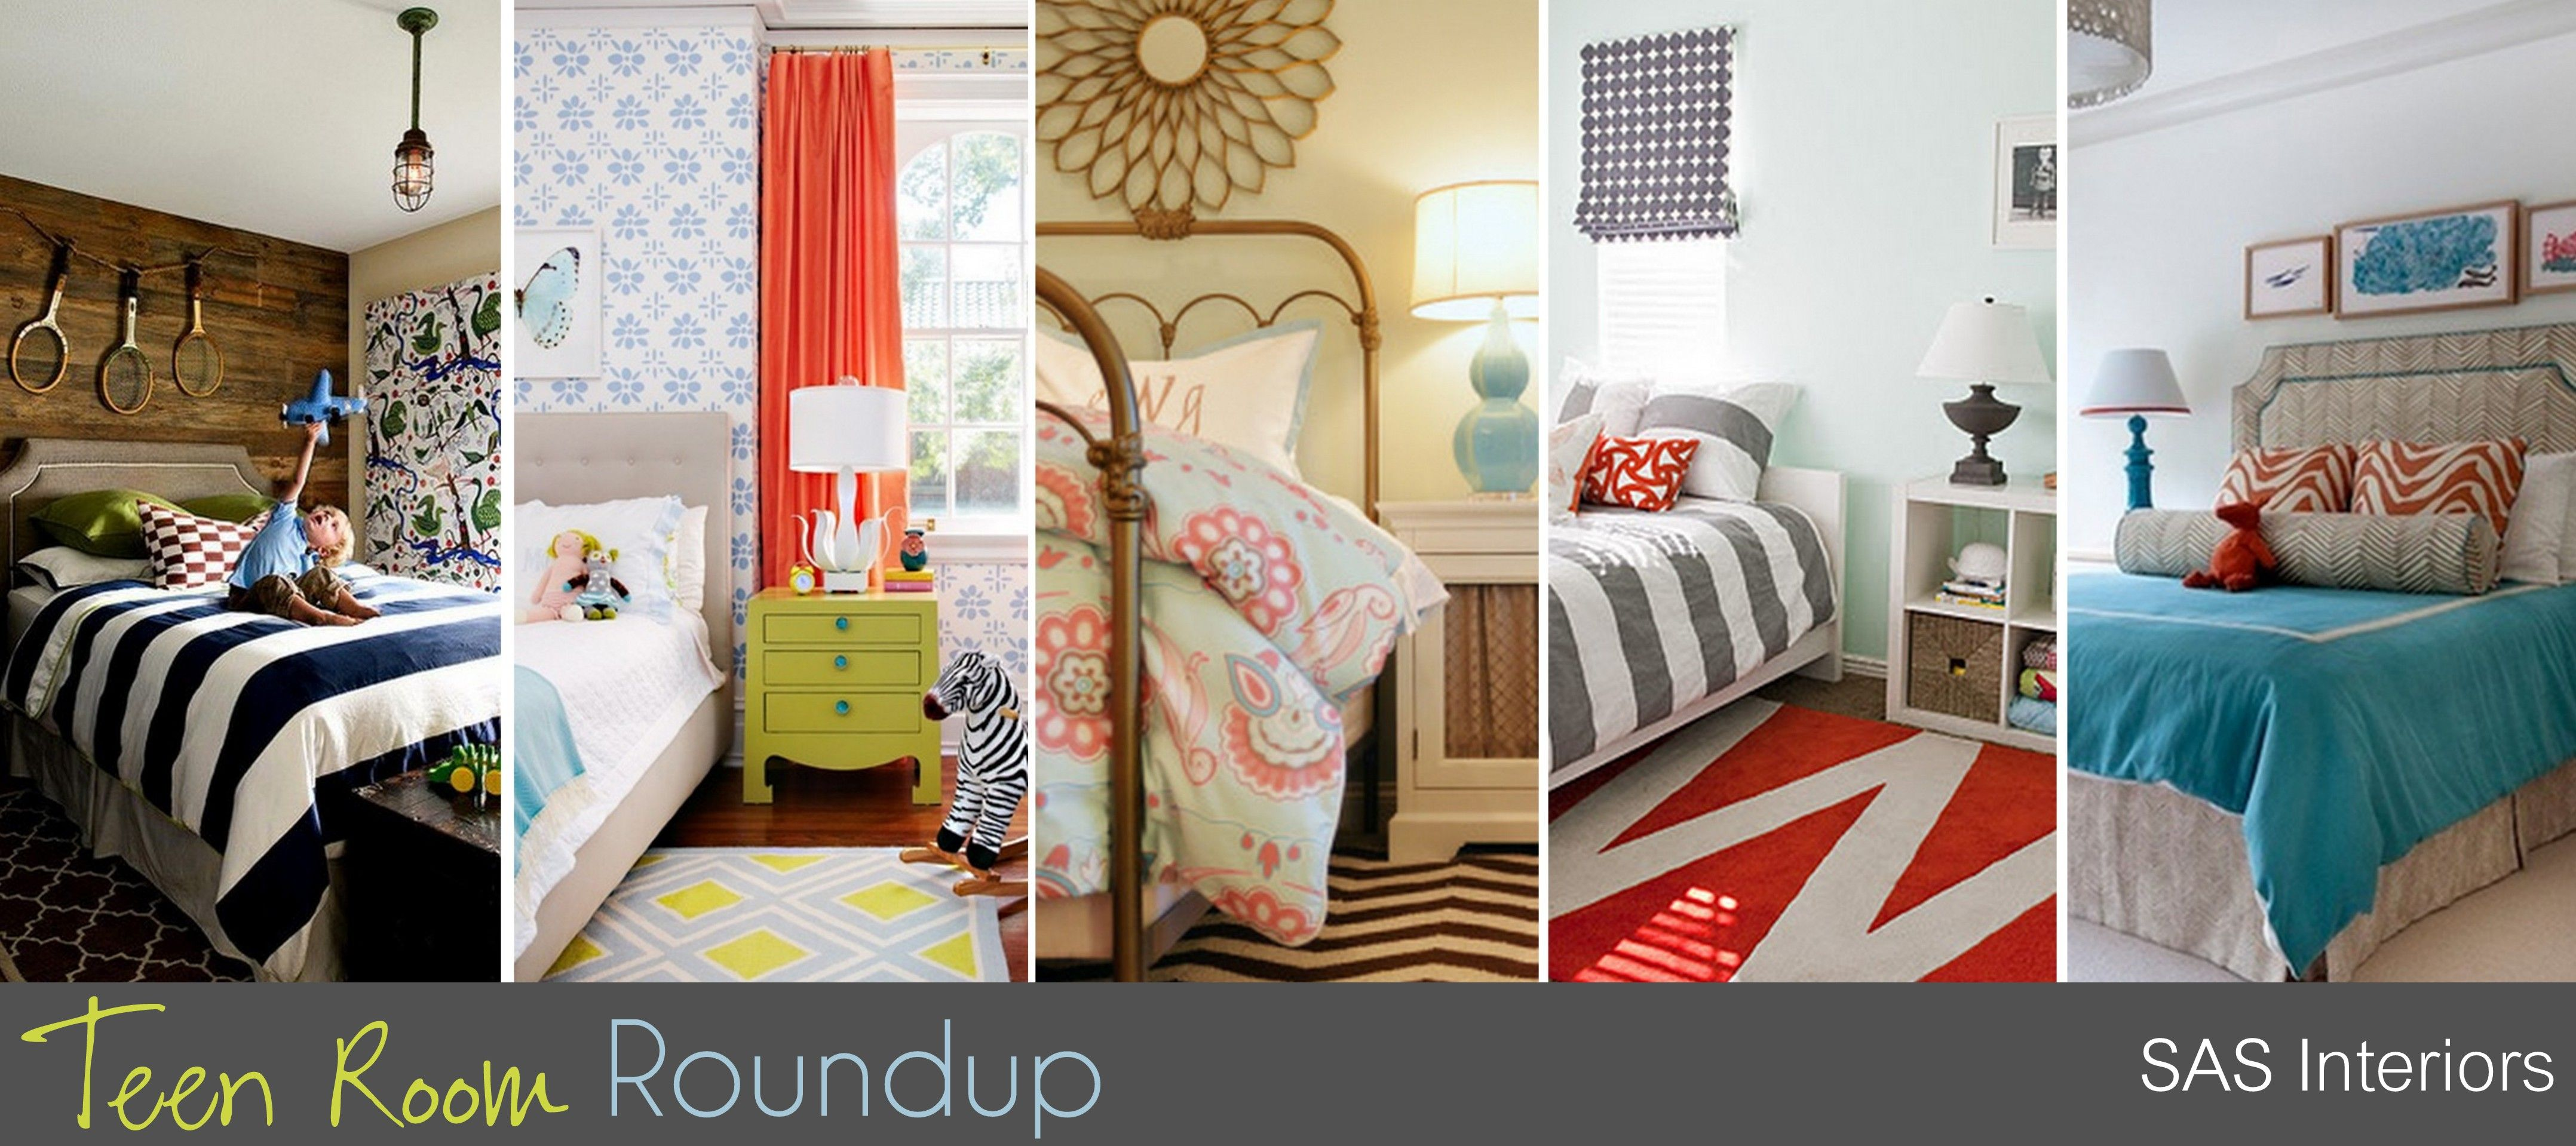 Teen Room Roundup - Inspiration and ideas for designing a Teen's Bedroom by @Jenna_Burger, www.sasinteriors.net